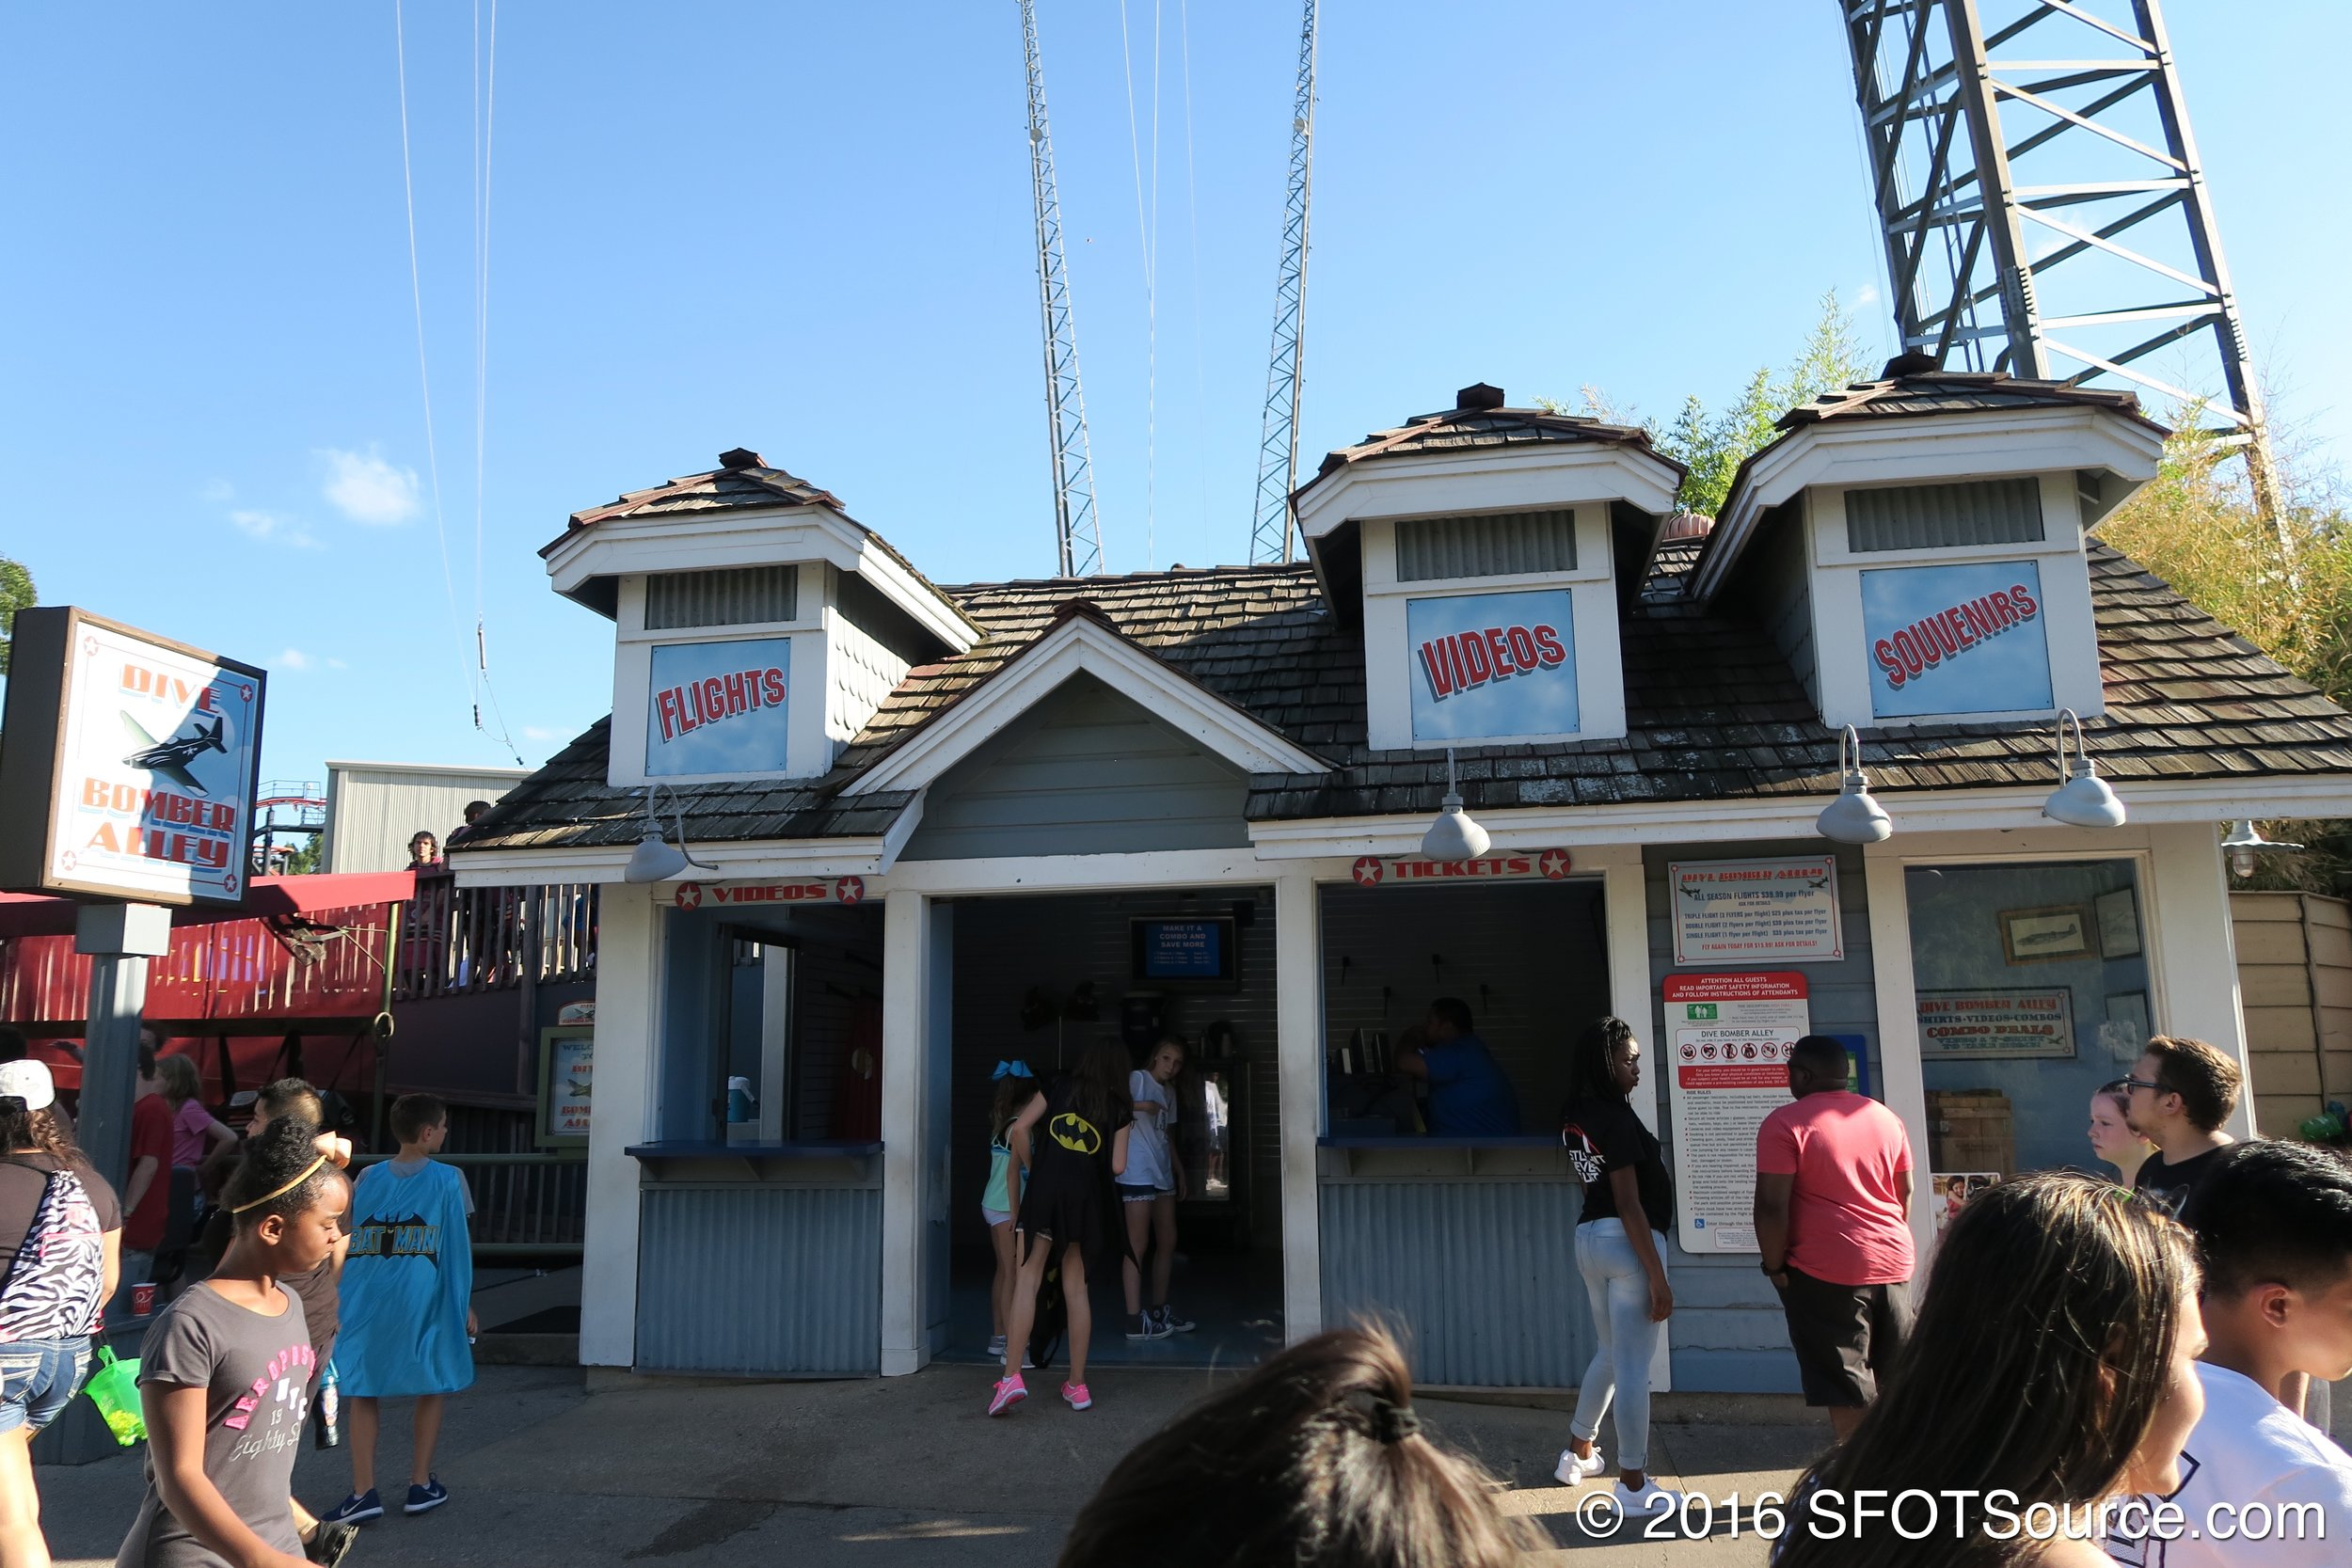 The main entrance to Dive Bomber Alley.